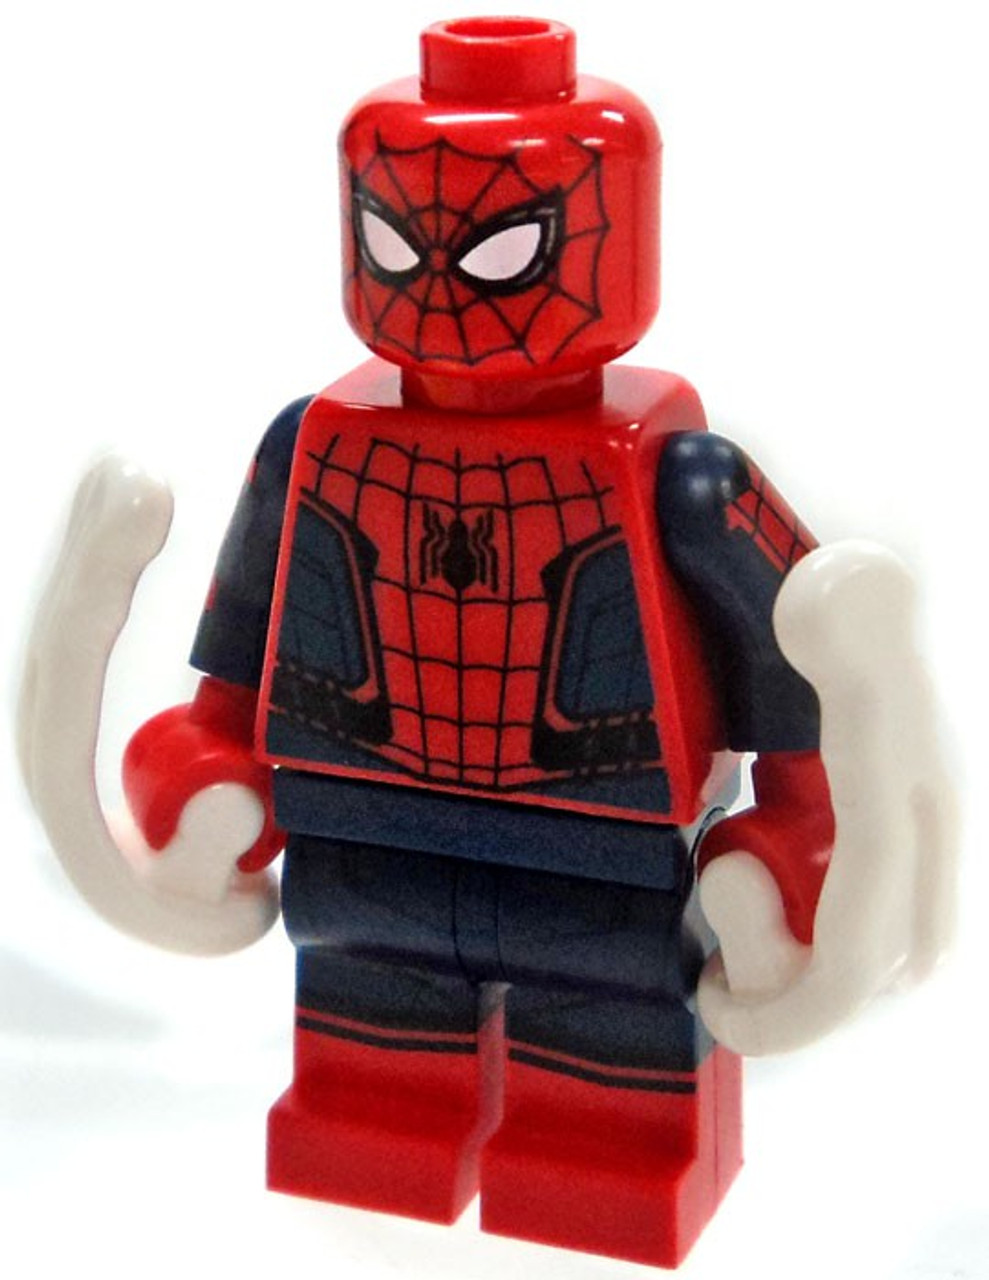 Lego Marvel Super Heroes Spider Man Homecoming Spider Man Minifigure